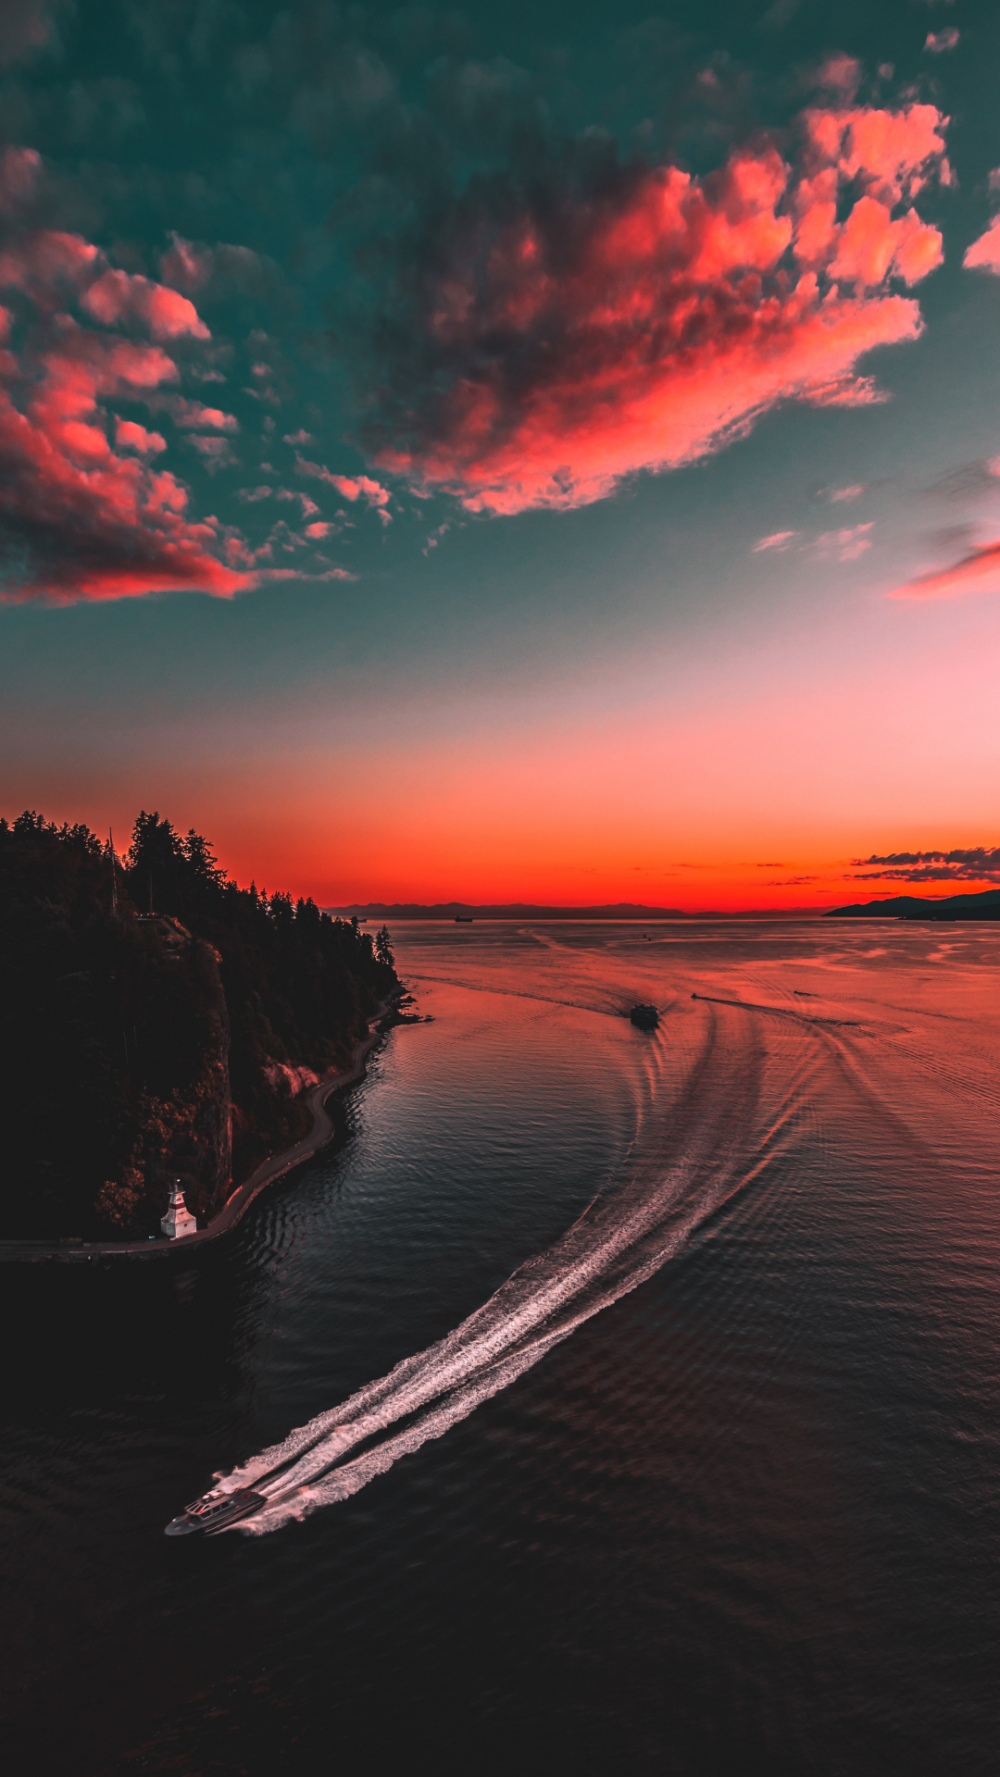 Into The Night Iphone Wallpaper In 2020 Sunset Wallpaper Iphone Wallpaper Images 4k Background